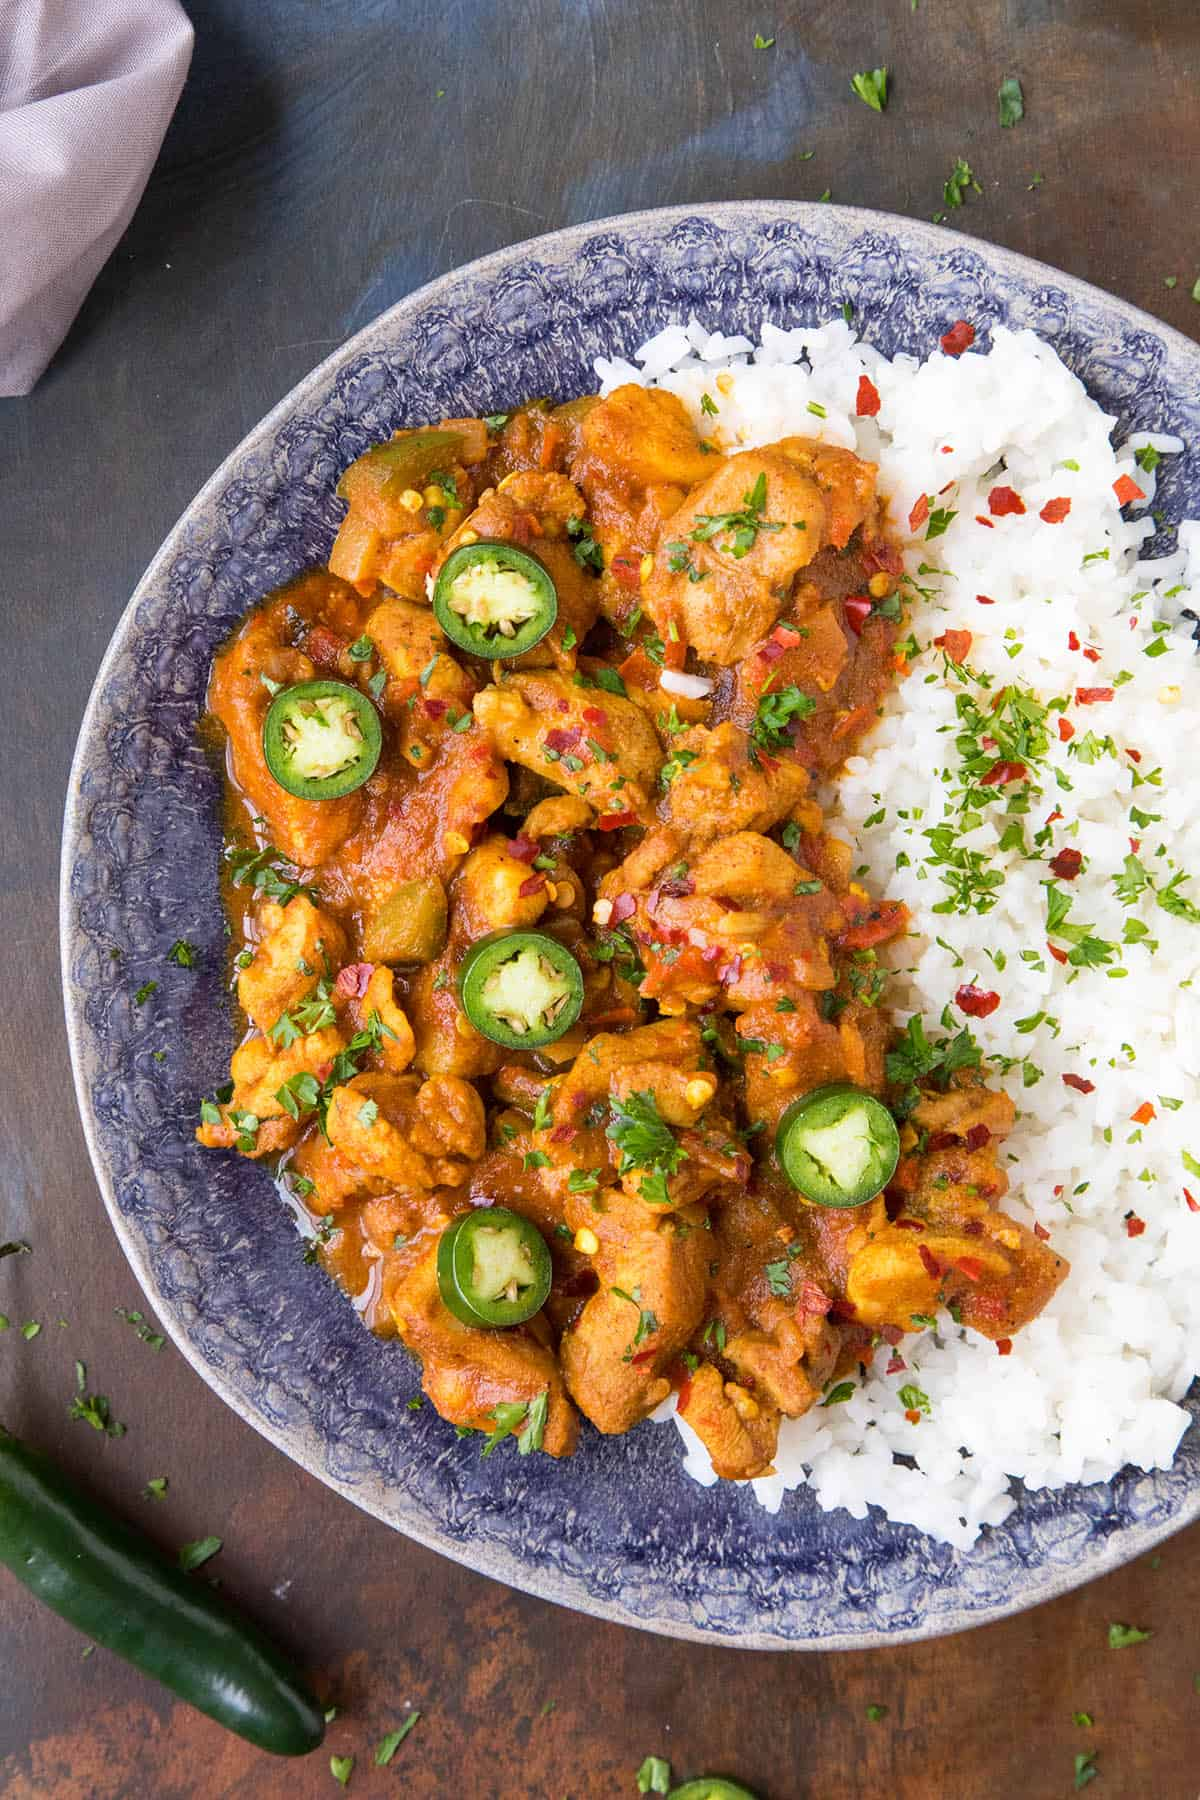 Fiery Chicken Vindaloo - Get Yourself a Plate Now